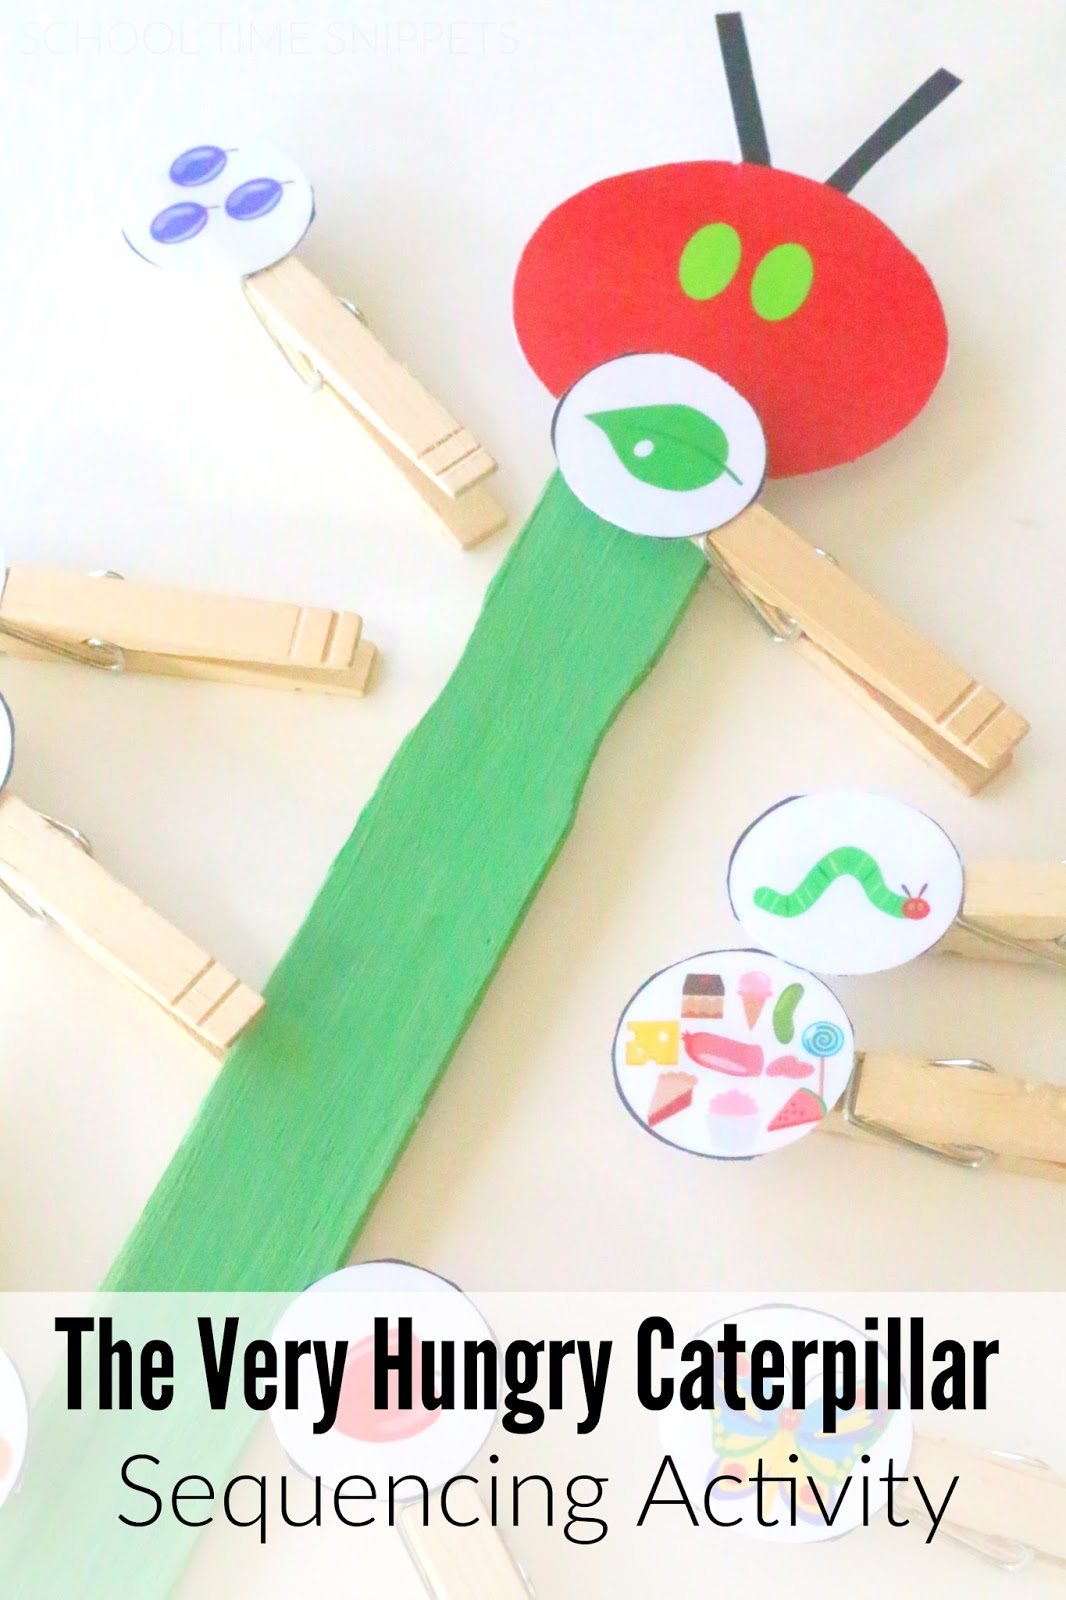 photo about Very Hungry Caterpillar Printable Activities referred to as The Amazingly Hungry Caterpillar Tale Sequencing Match